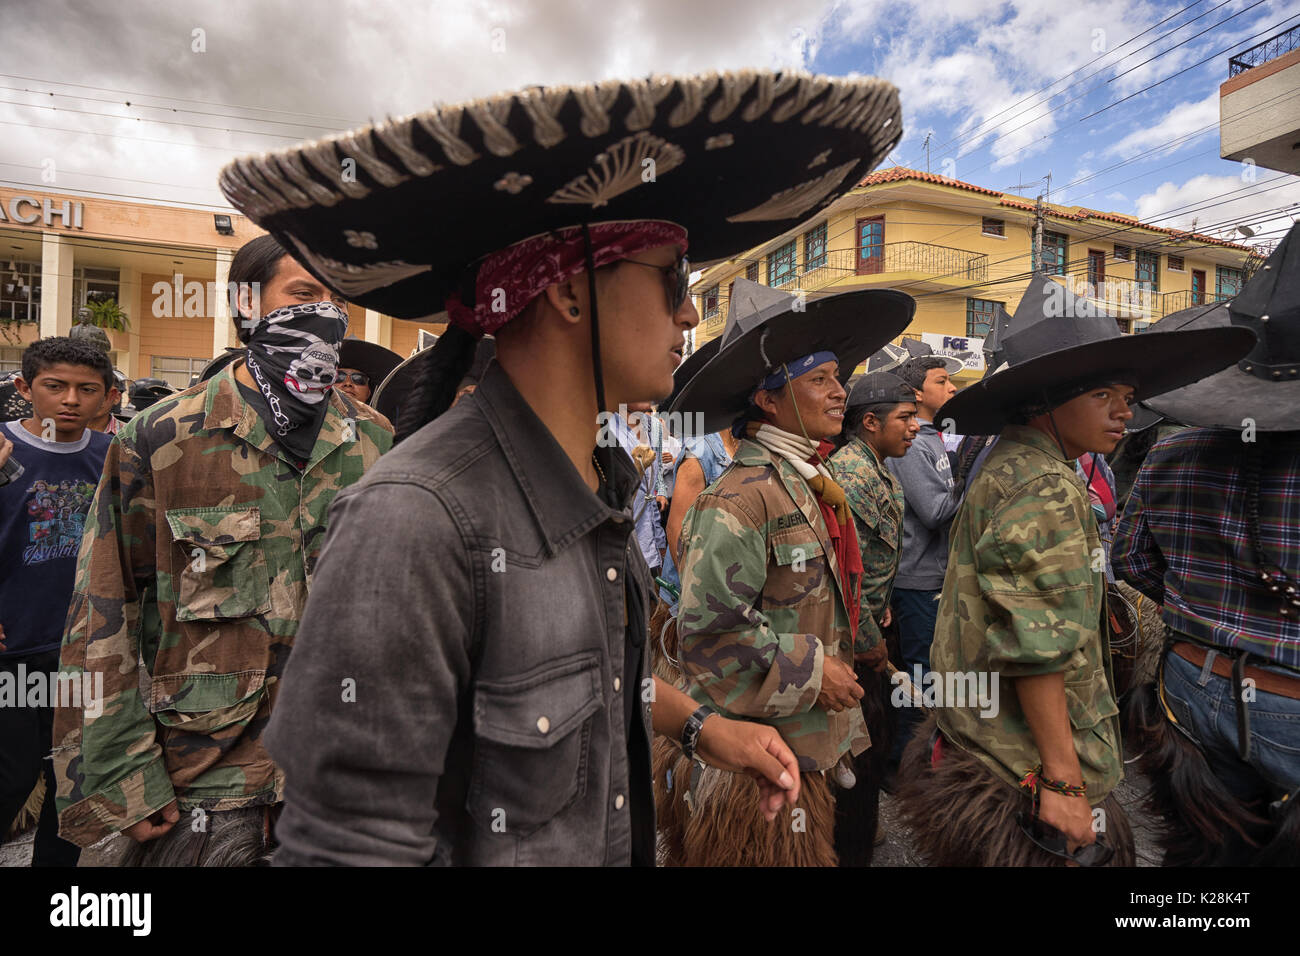 June 25, 2017 Cotacachi, Ecuador: the costumes worn during Inti Raymi by the indigenous people are a sign of revolt against the colonization - Stock Image